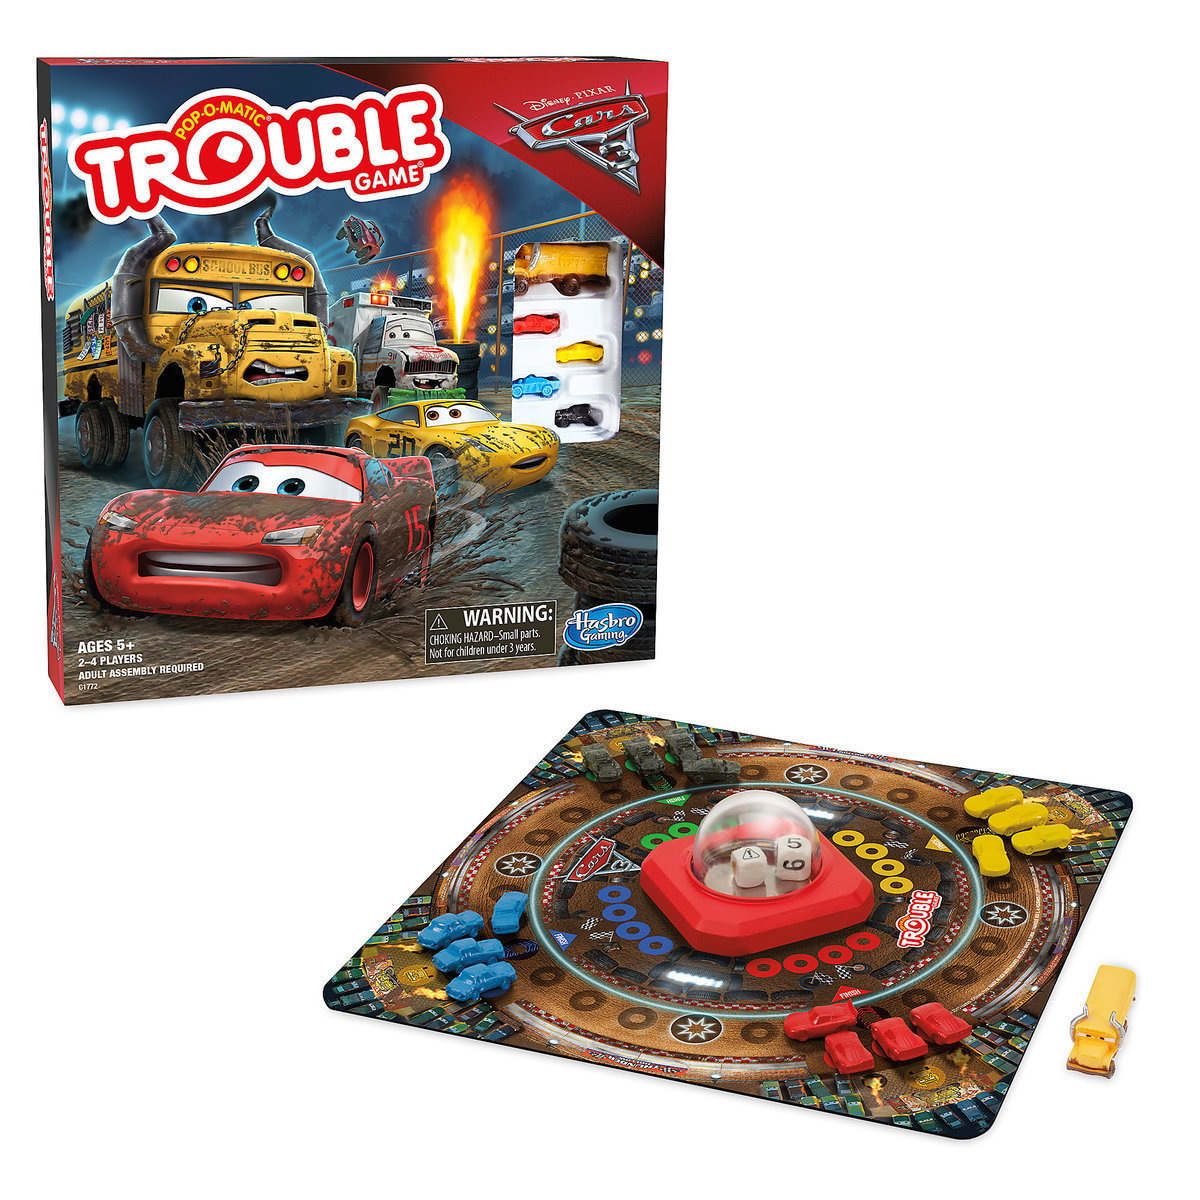 Trouble Game - PIXAR Cars 3 Edition